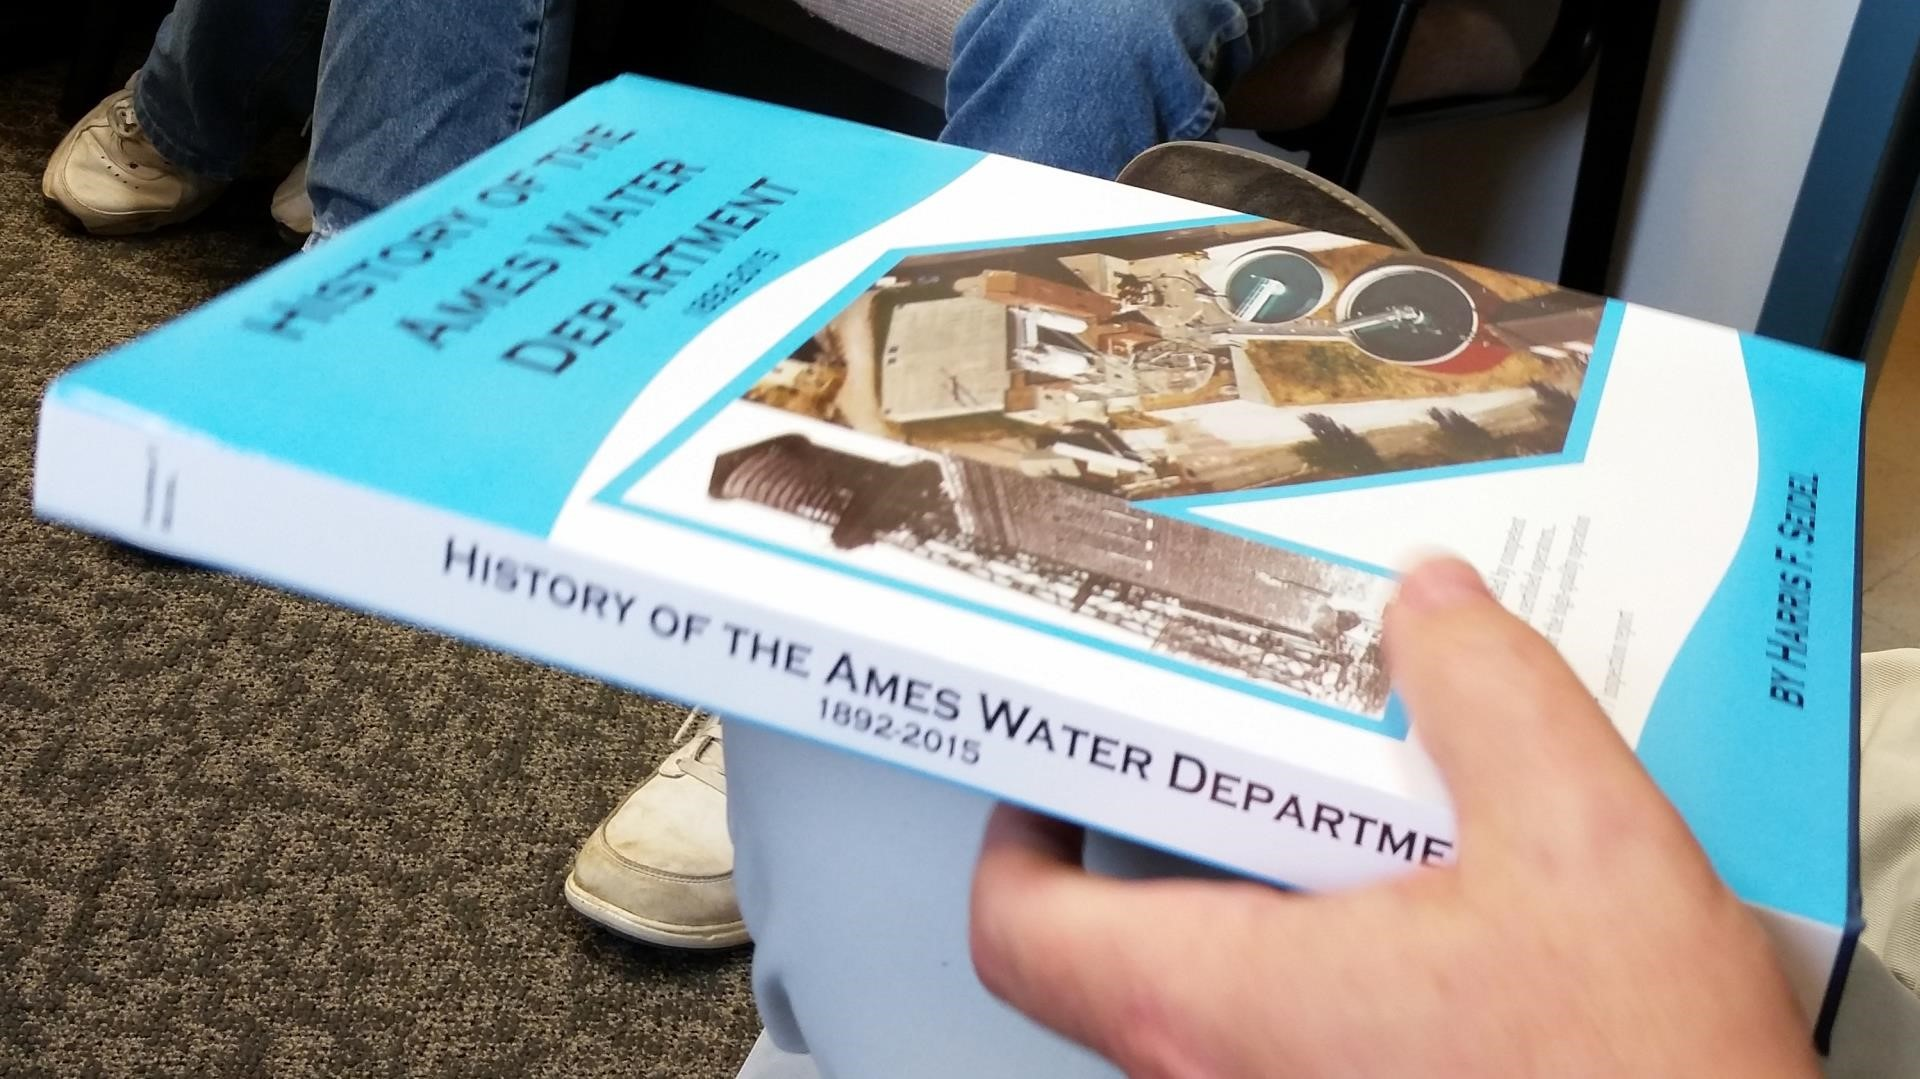 History of the Ames Water Department book